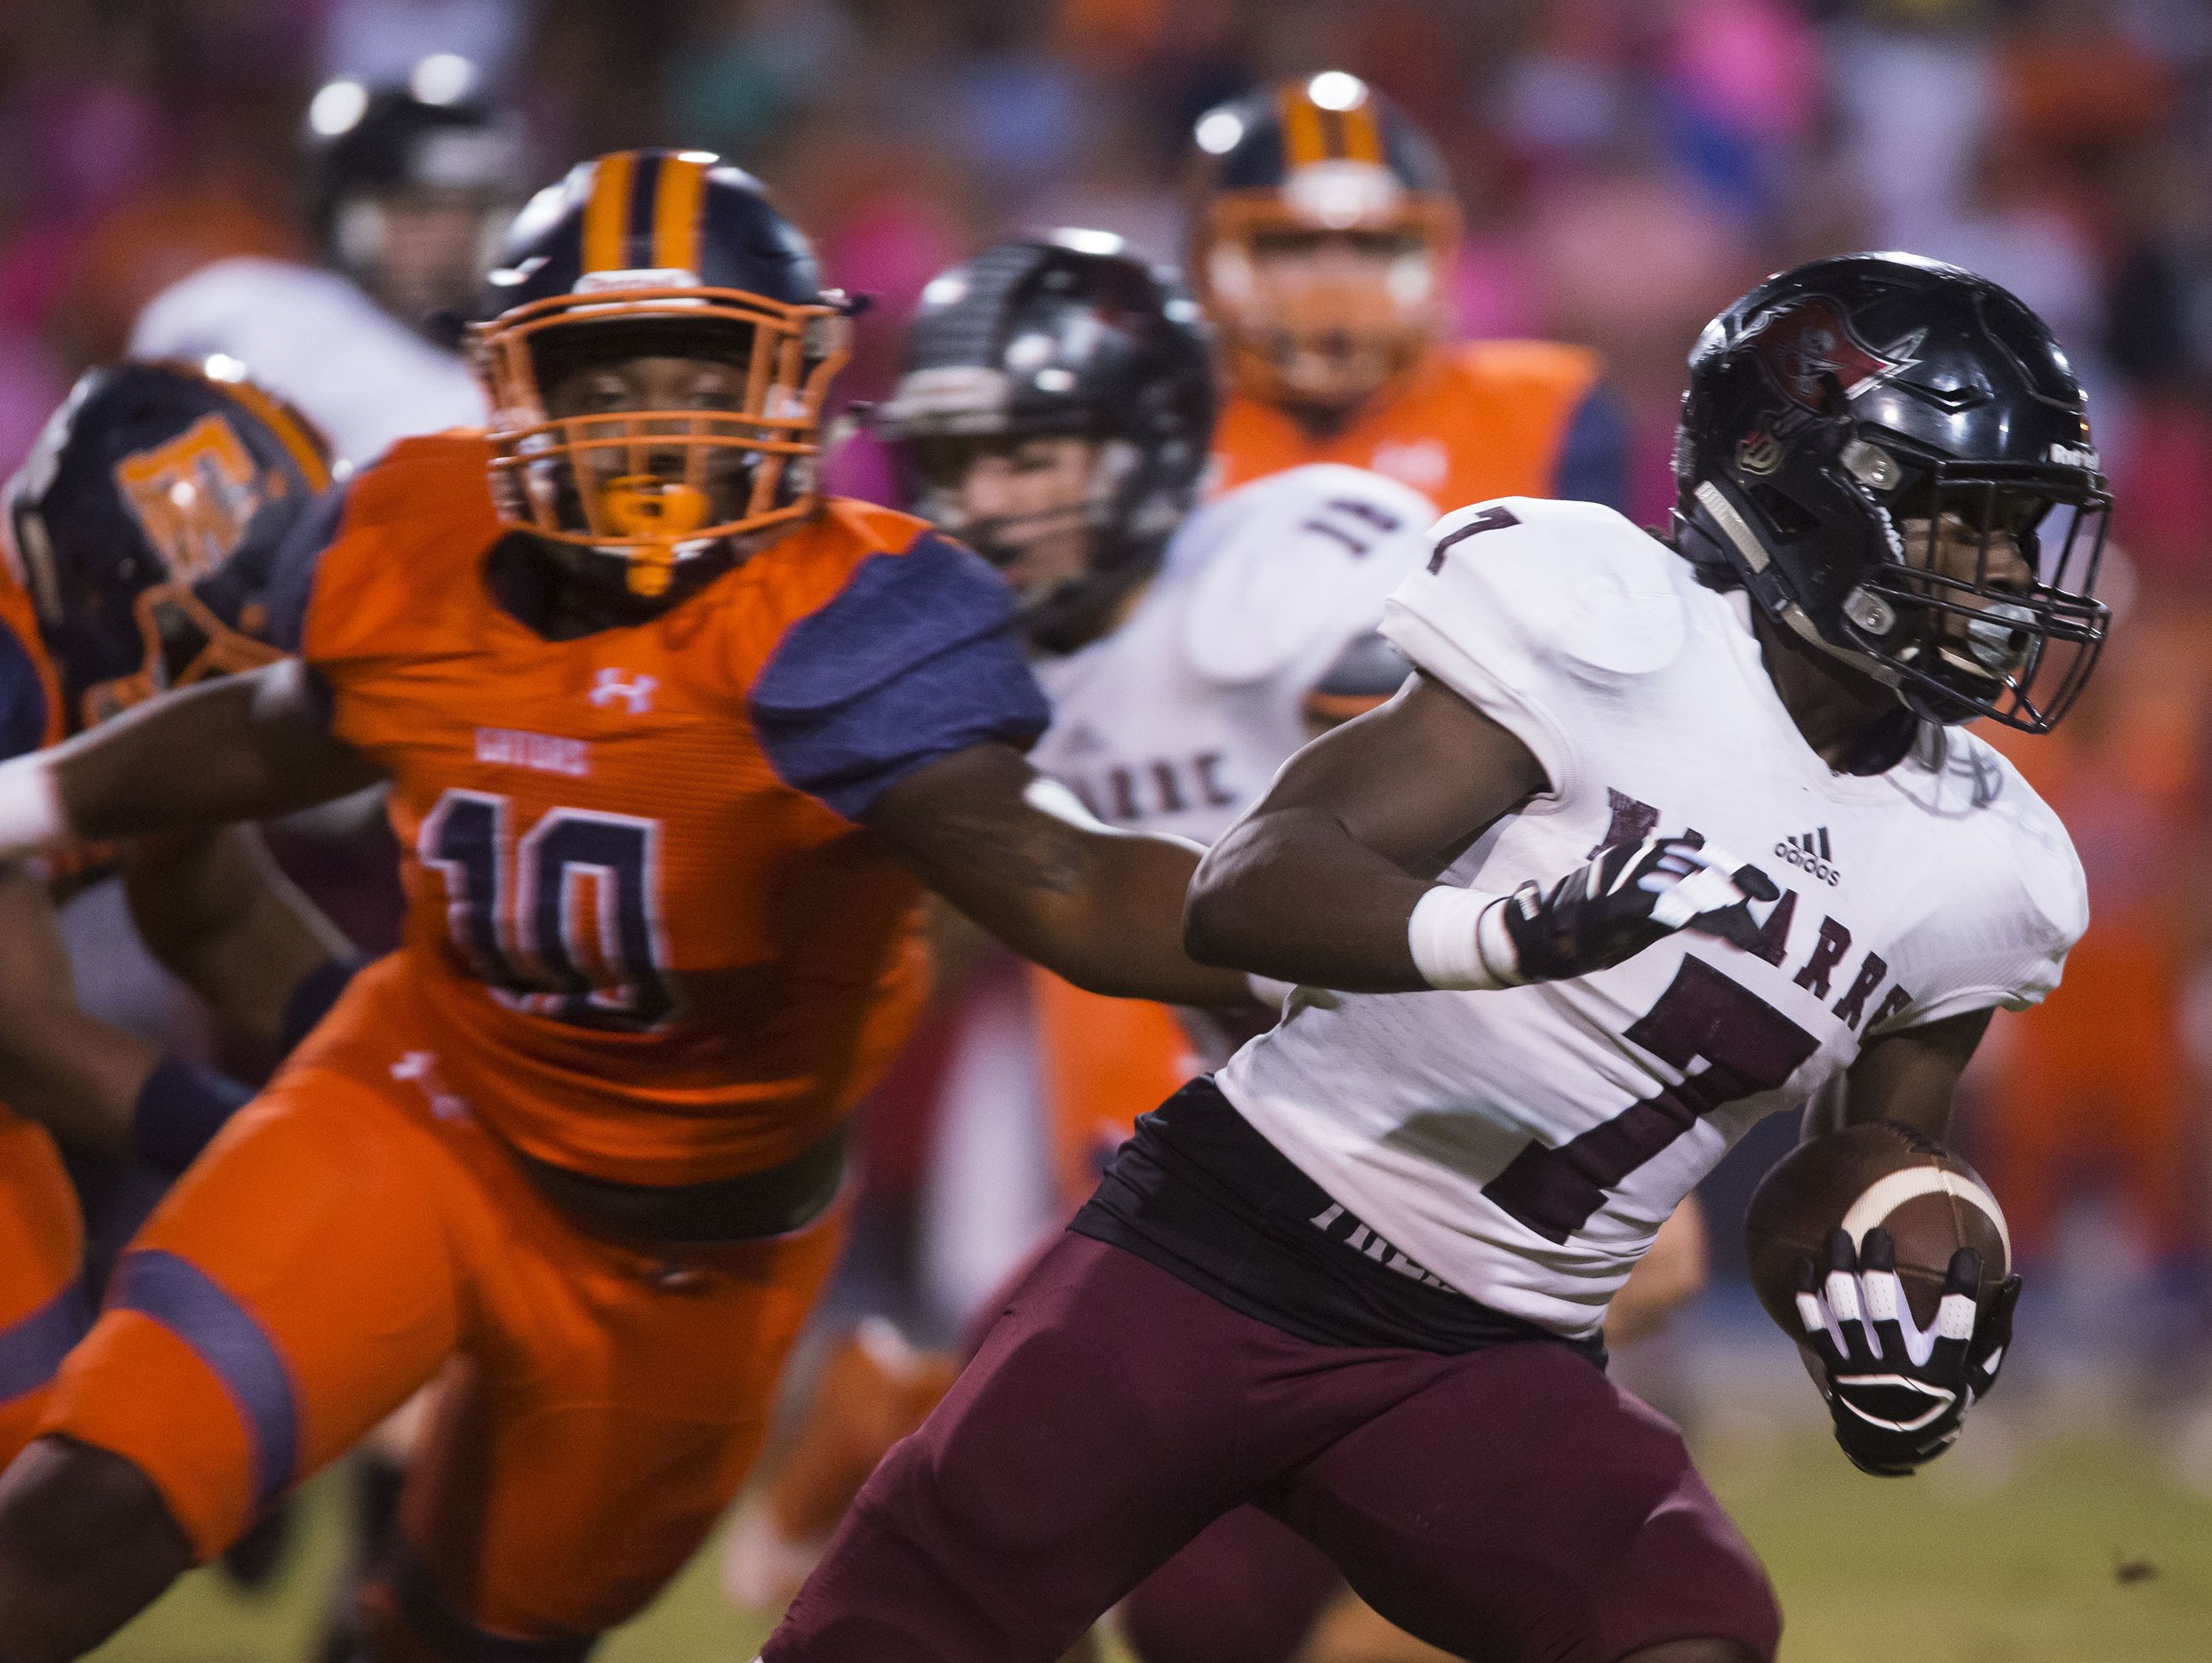 Navarre High School's, Michael Carter, (No. 7) gives the Escambia High School defense the slip with a run up the middle during Friday night's game against the Gators.